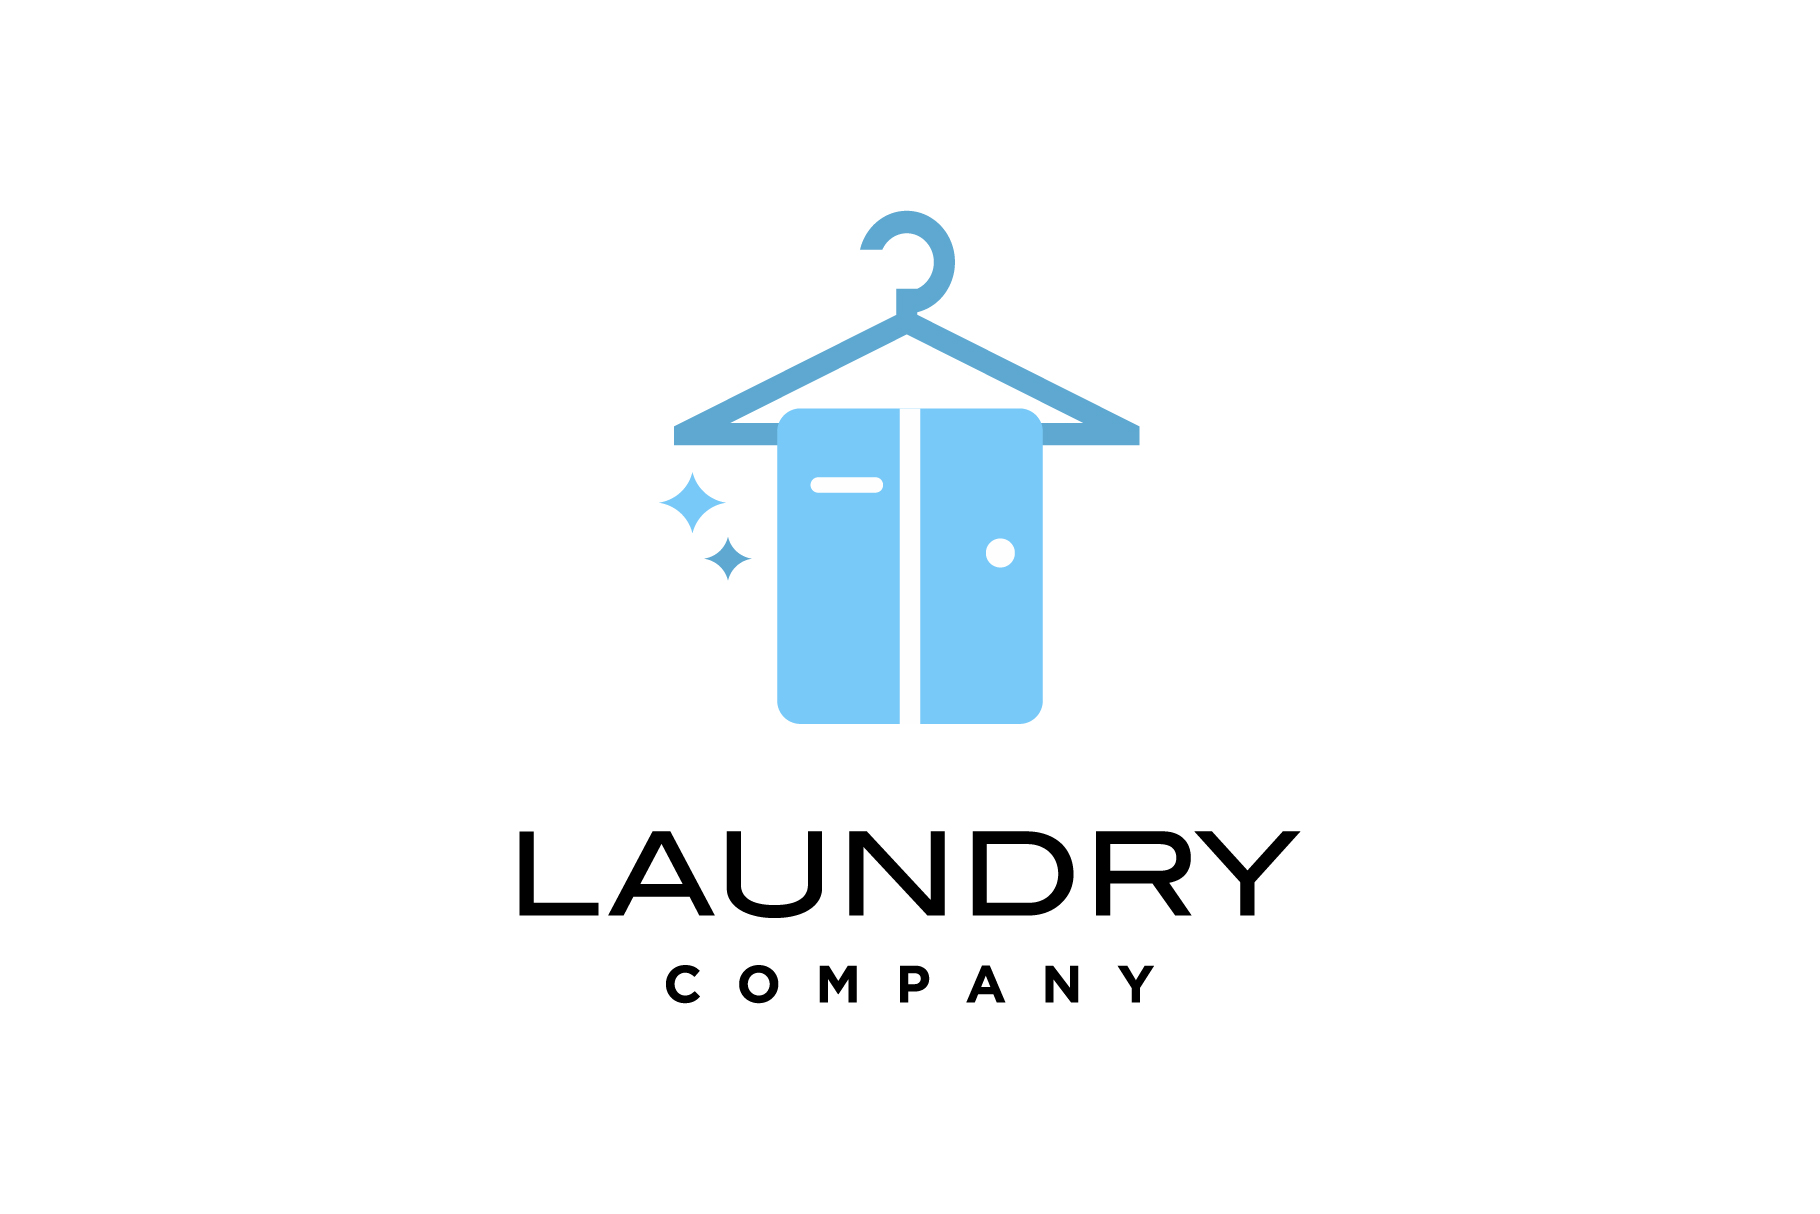 laundry clean clothes logo example image 1